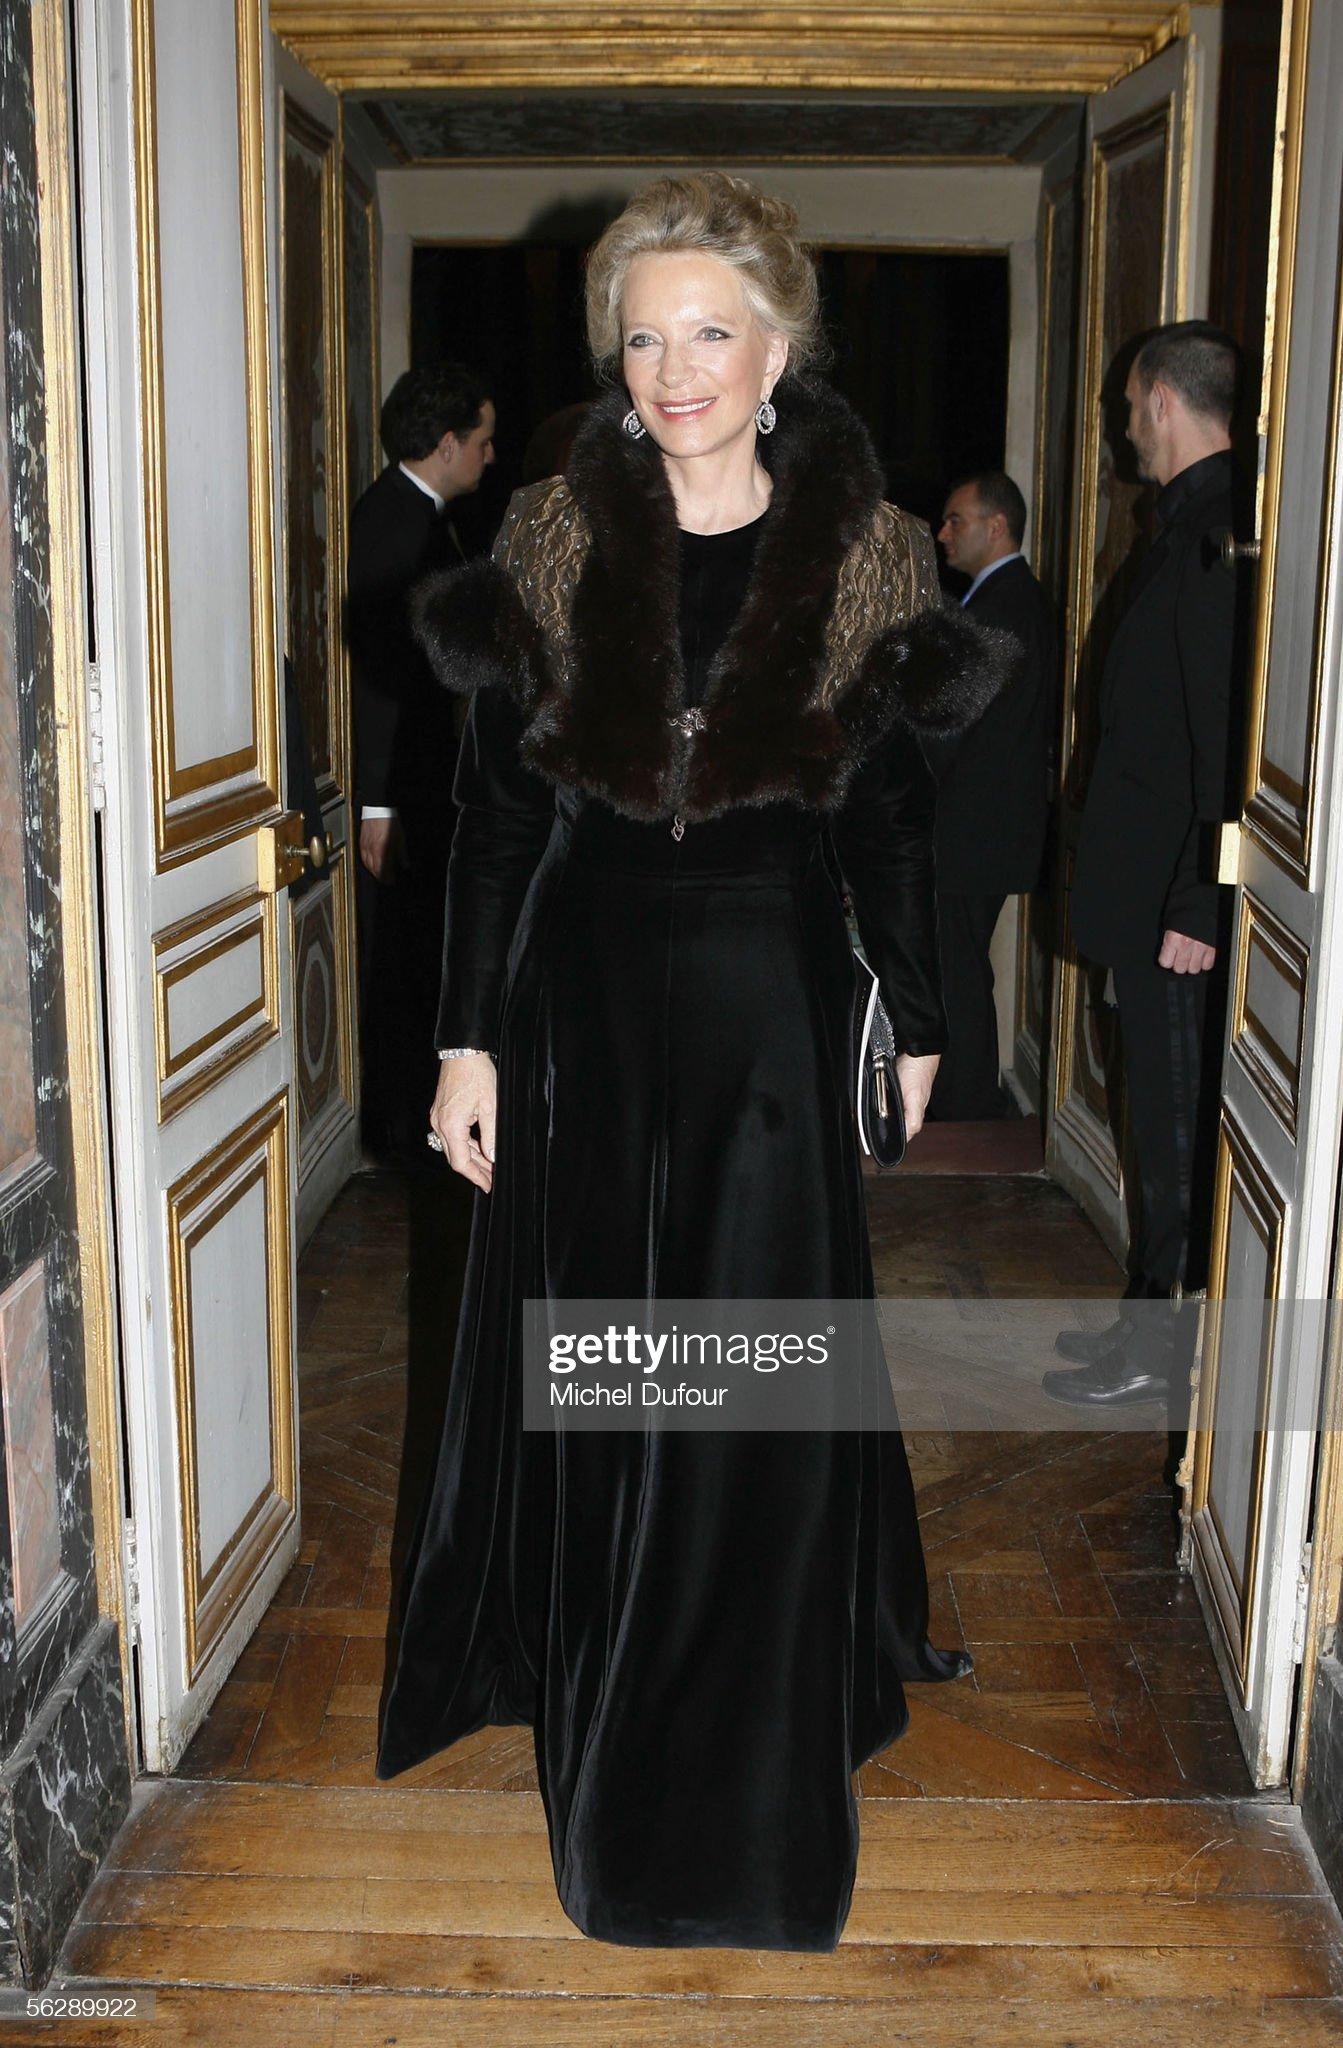 Fondation Pour L'Enfance Ball In Versailles : News Photo